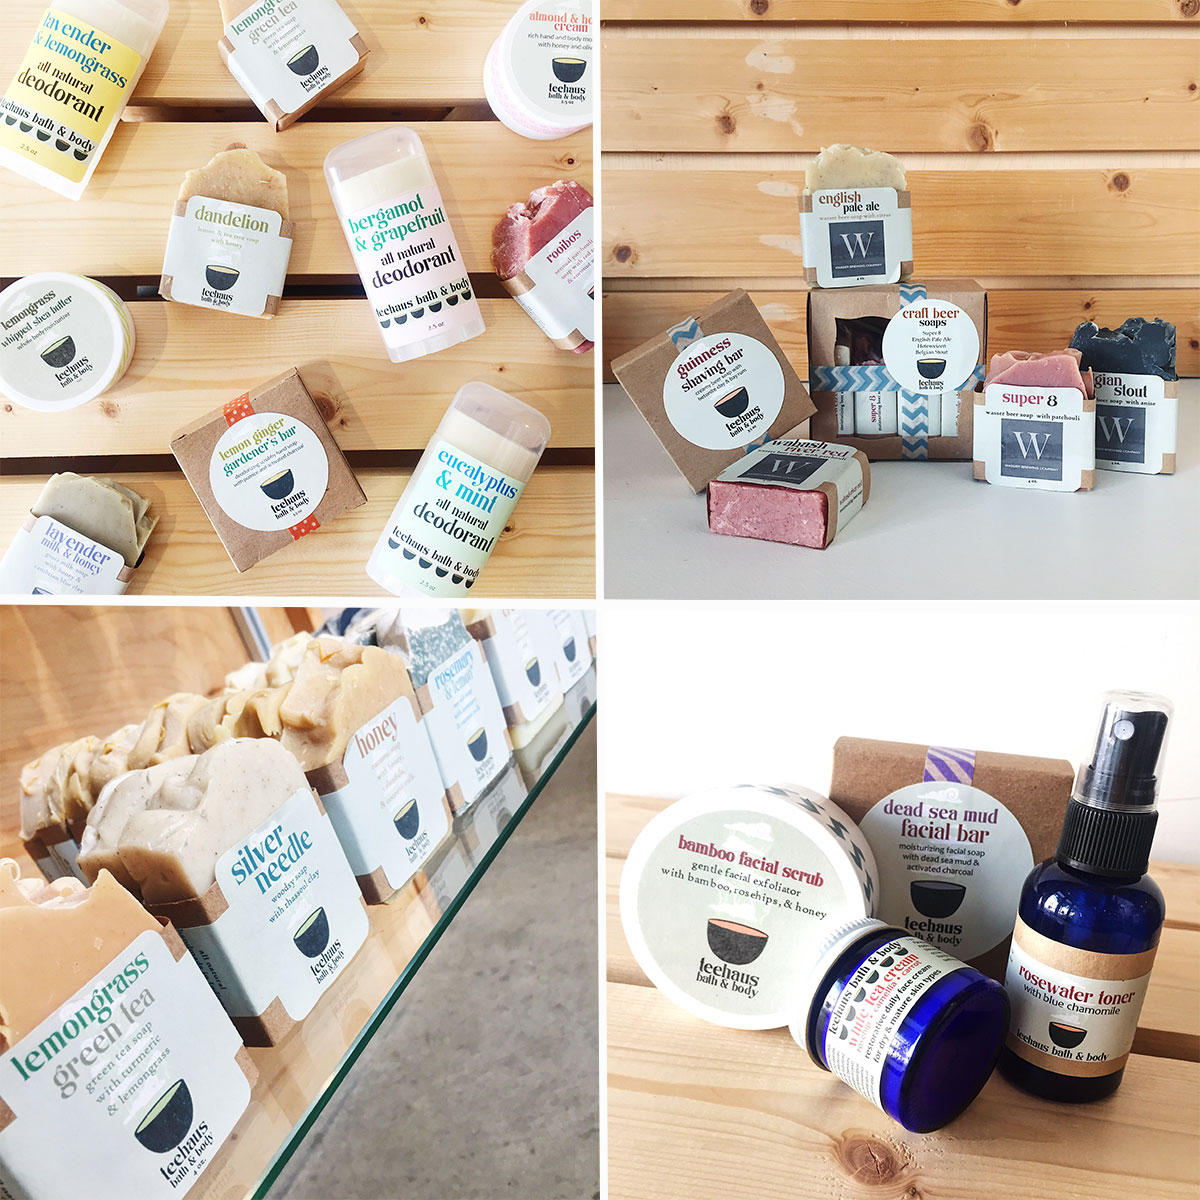 Teehaus Bath and Body at Homespun Modern Handmade